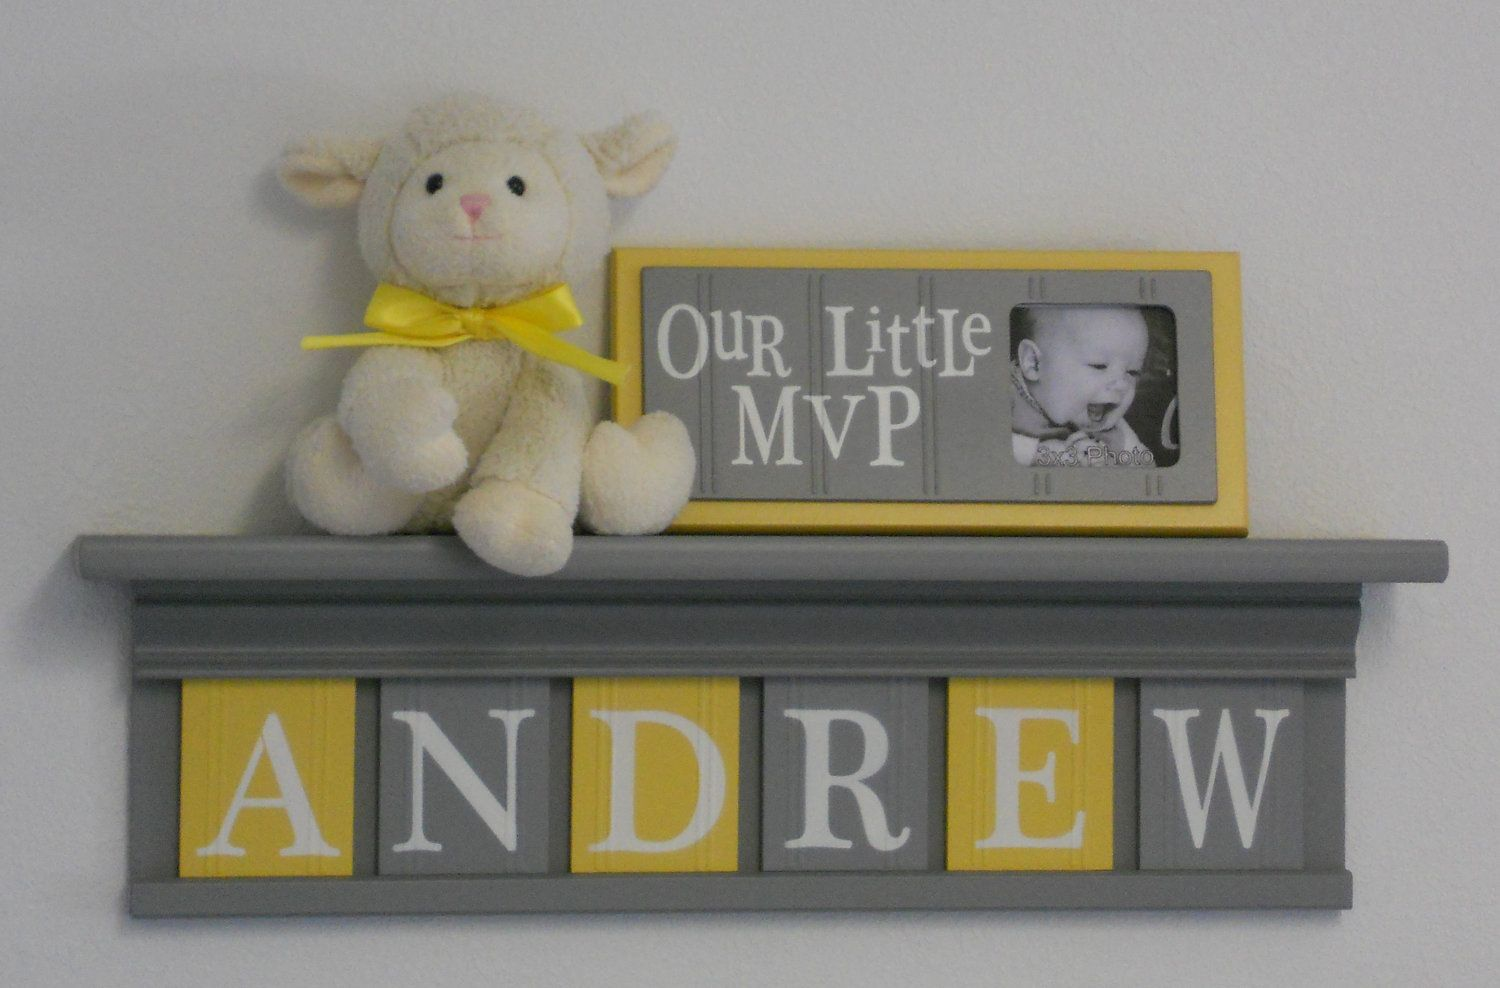 Baby Boy Room Decoration Name Nursery Decor 24 Shelf Gray And 6 Wooden Wall Letters Yellow Andrew 43 00 Via Etsy